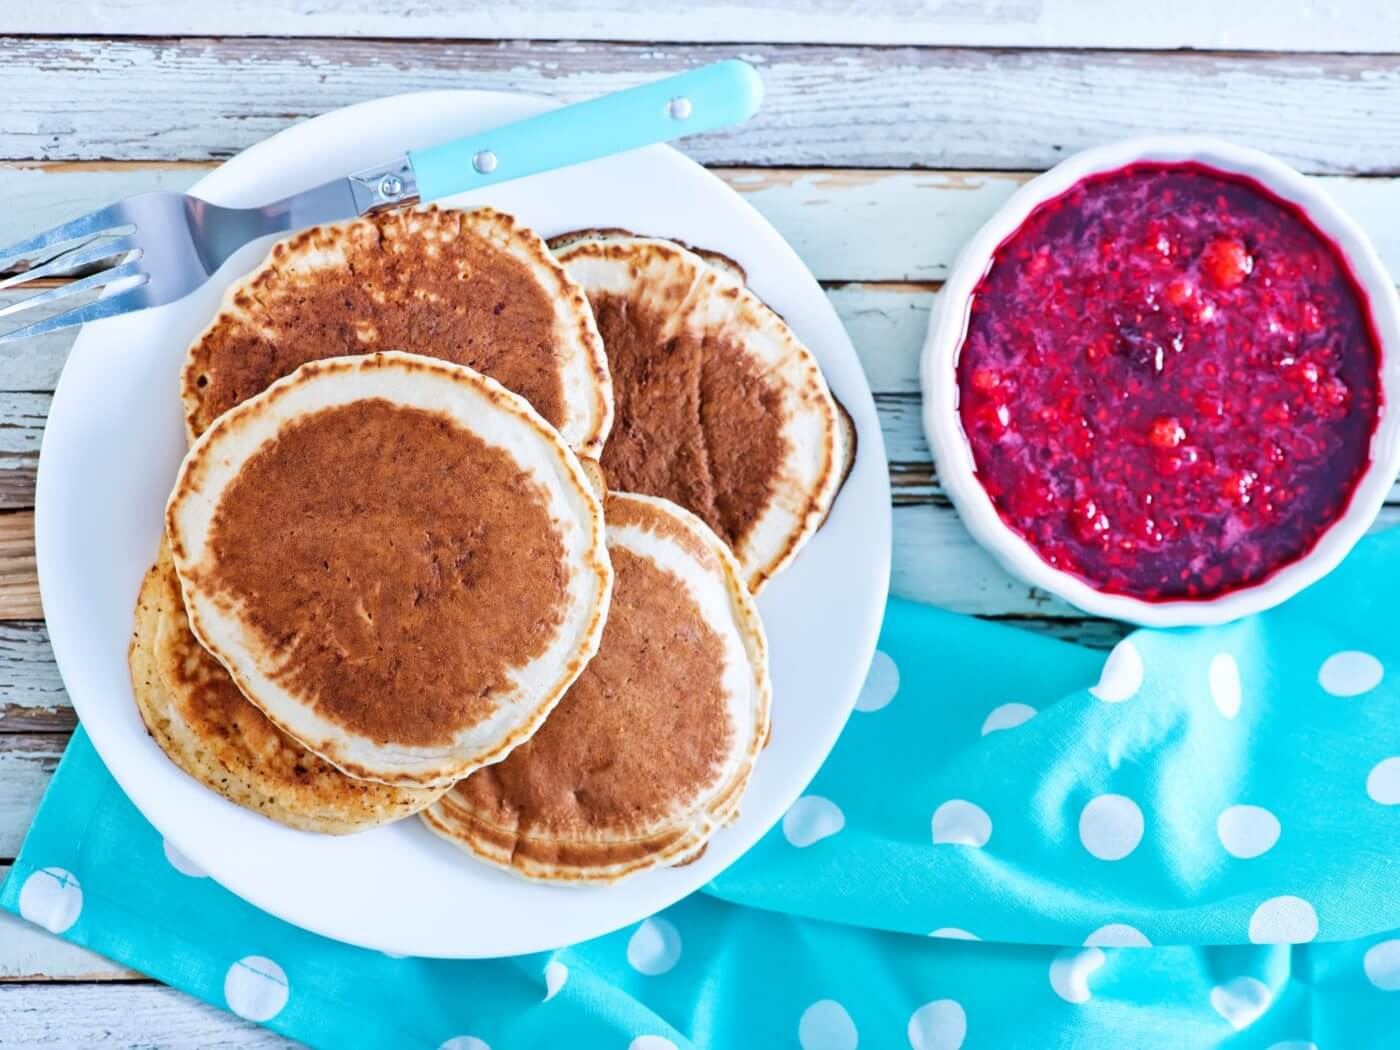 sweet pancakes with jam on the plate